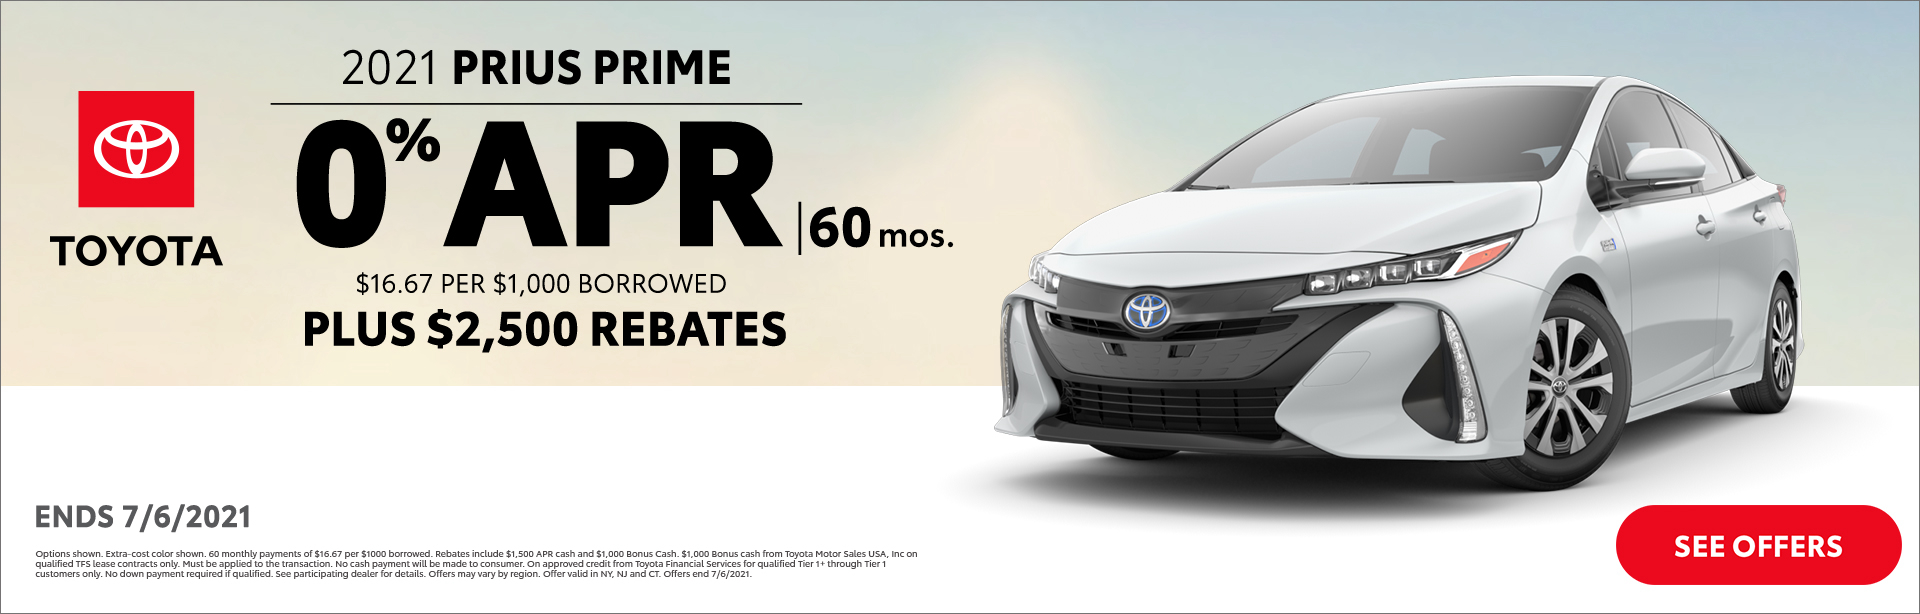 06-21_01_Connecticut-Greater-New-York-Up-State-June-2021-GNY-UNY-CT-Prius-Prime_1920x614_1b1f_Prius-Prime_R_xta.jpeg